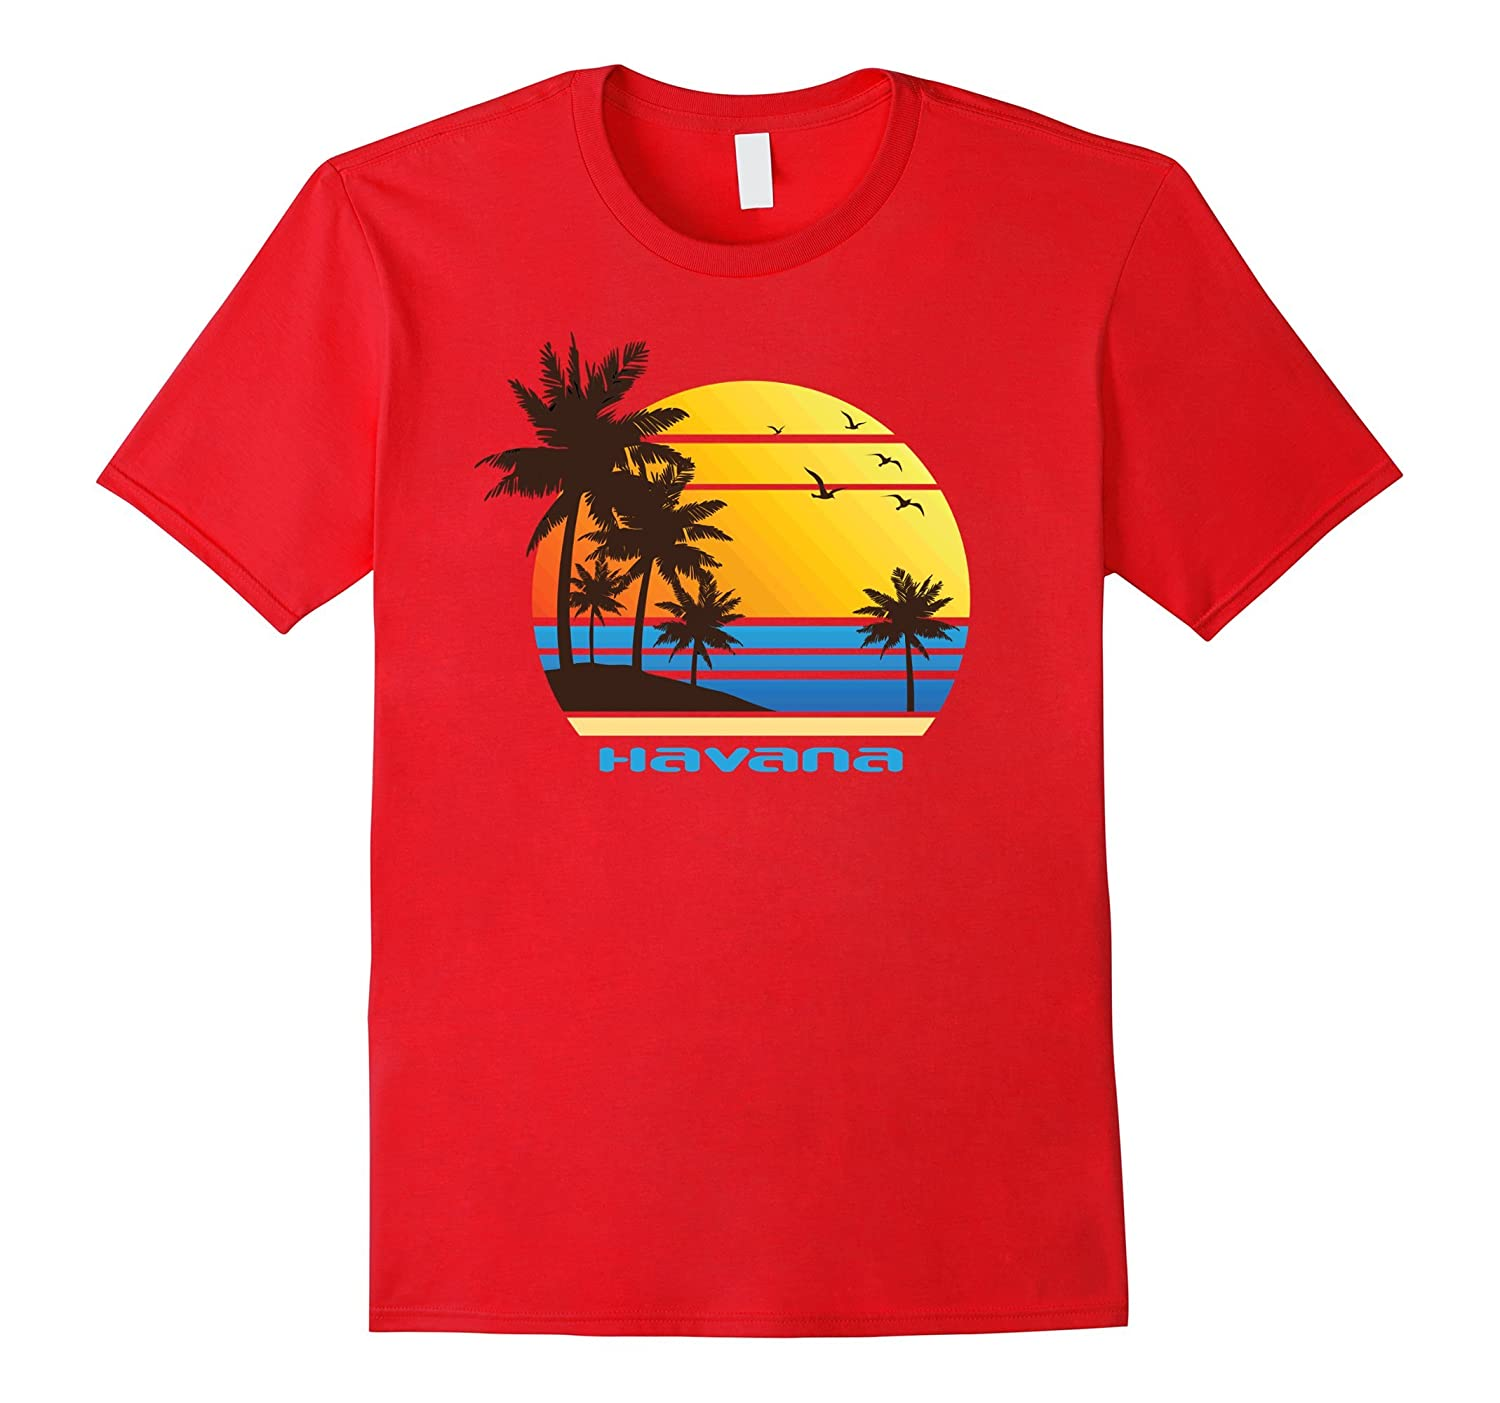 Havana Beach Surf T-Shirt Summer Sun Fun Ski Tee Shirt-T-Shirt